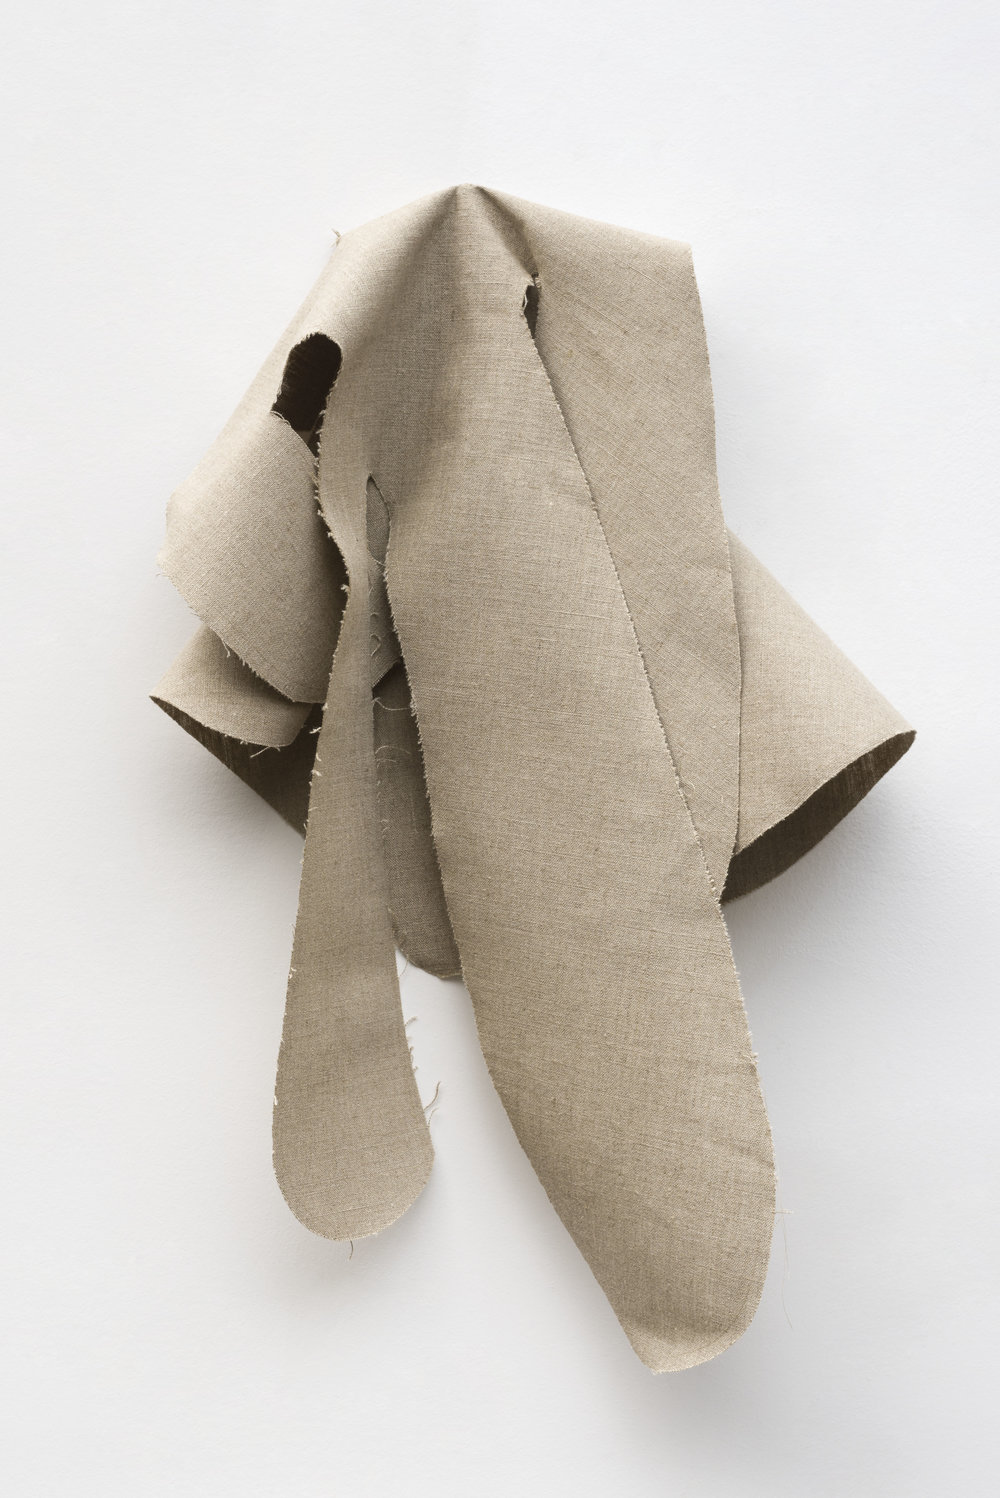 Nathan Mabry, Feels (Ghost V), 2017 belgian linen, brass 76 x 56 x 21 cm - 29 x 22 1/16 x 8 9/32 inches